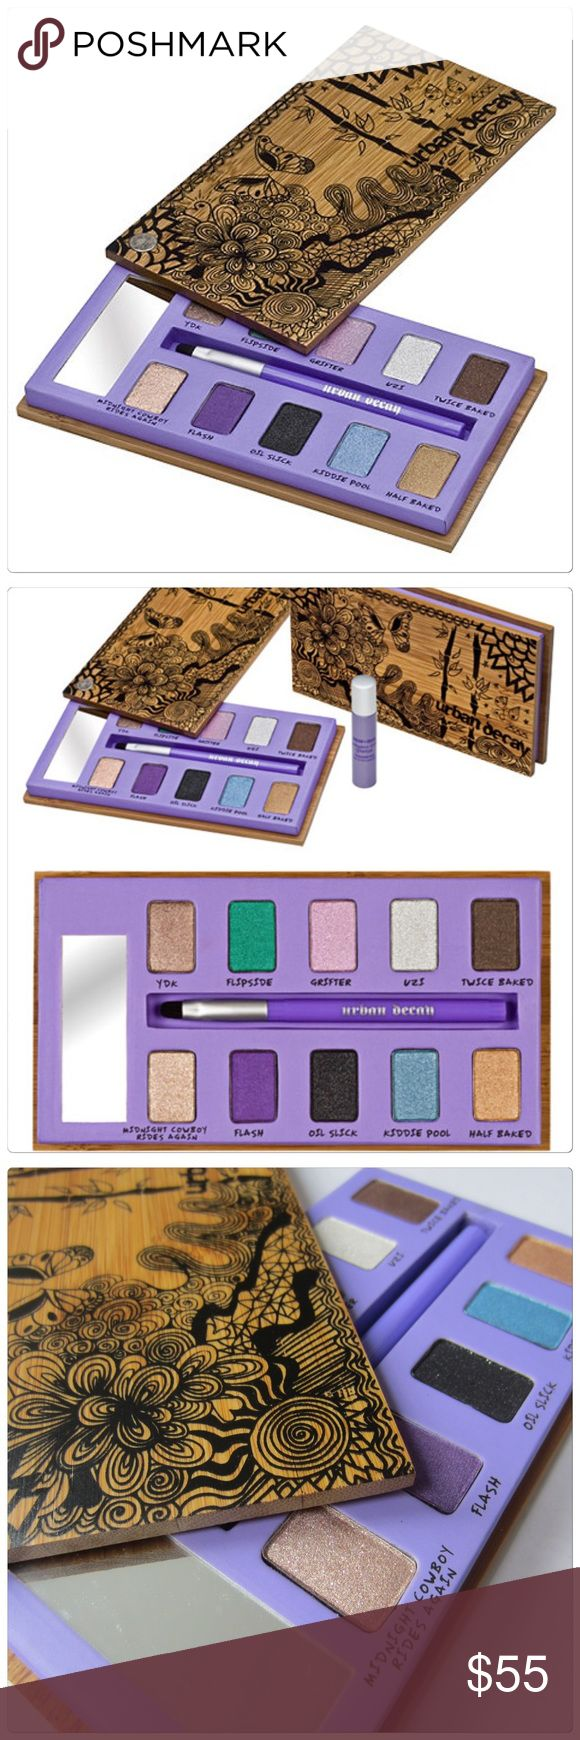 🆕 Urban Decay Sustainable eyeshadow box + primer Urban Decay Sustainable shadow box. Packaged in a unique wooden box. Comes with 10 eyeshadow shades. Includes a travel size primer potion and brush. Brand new. Urban Decay Makeup Eyeshadow